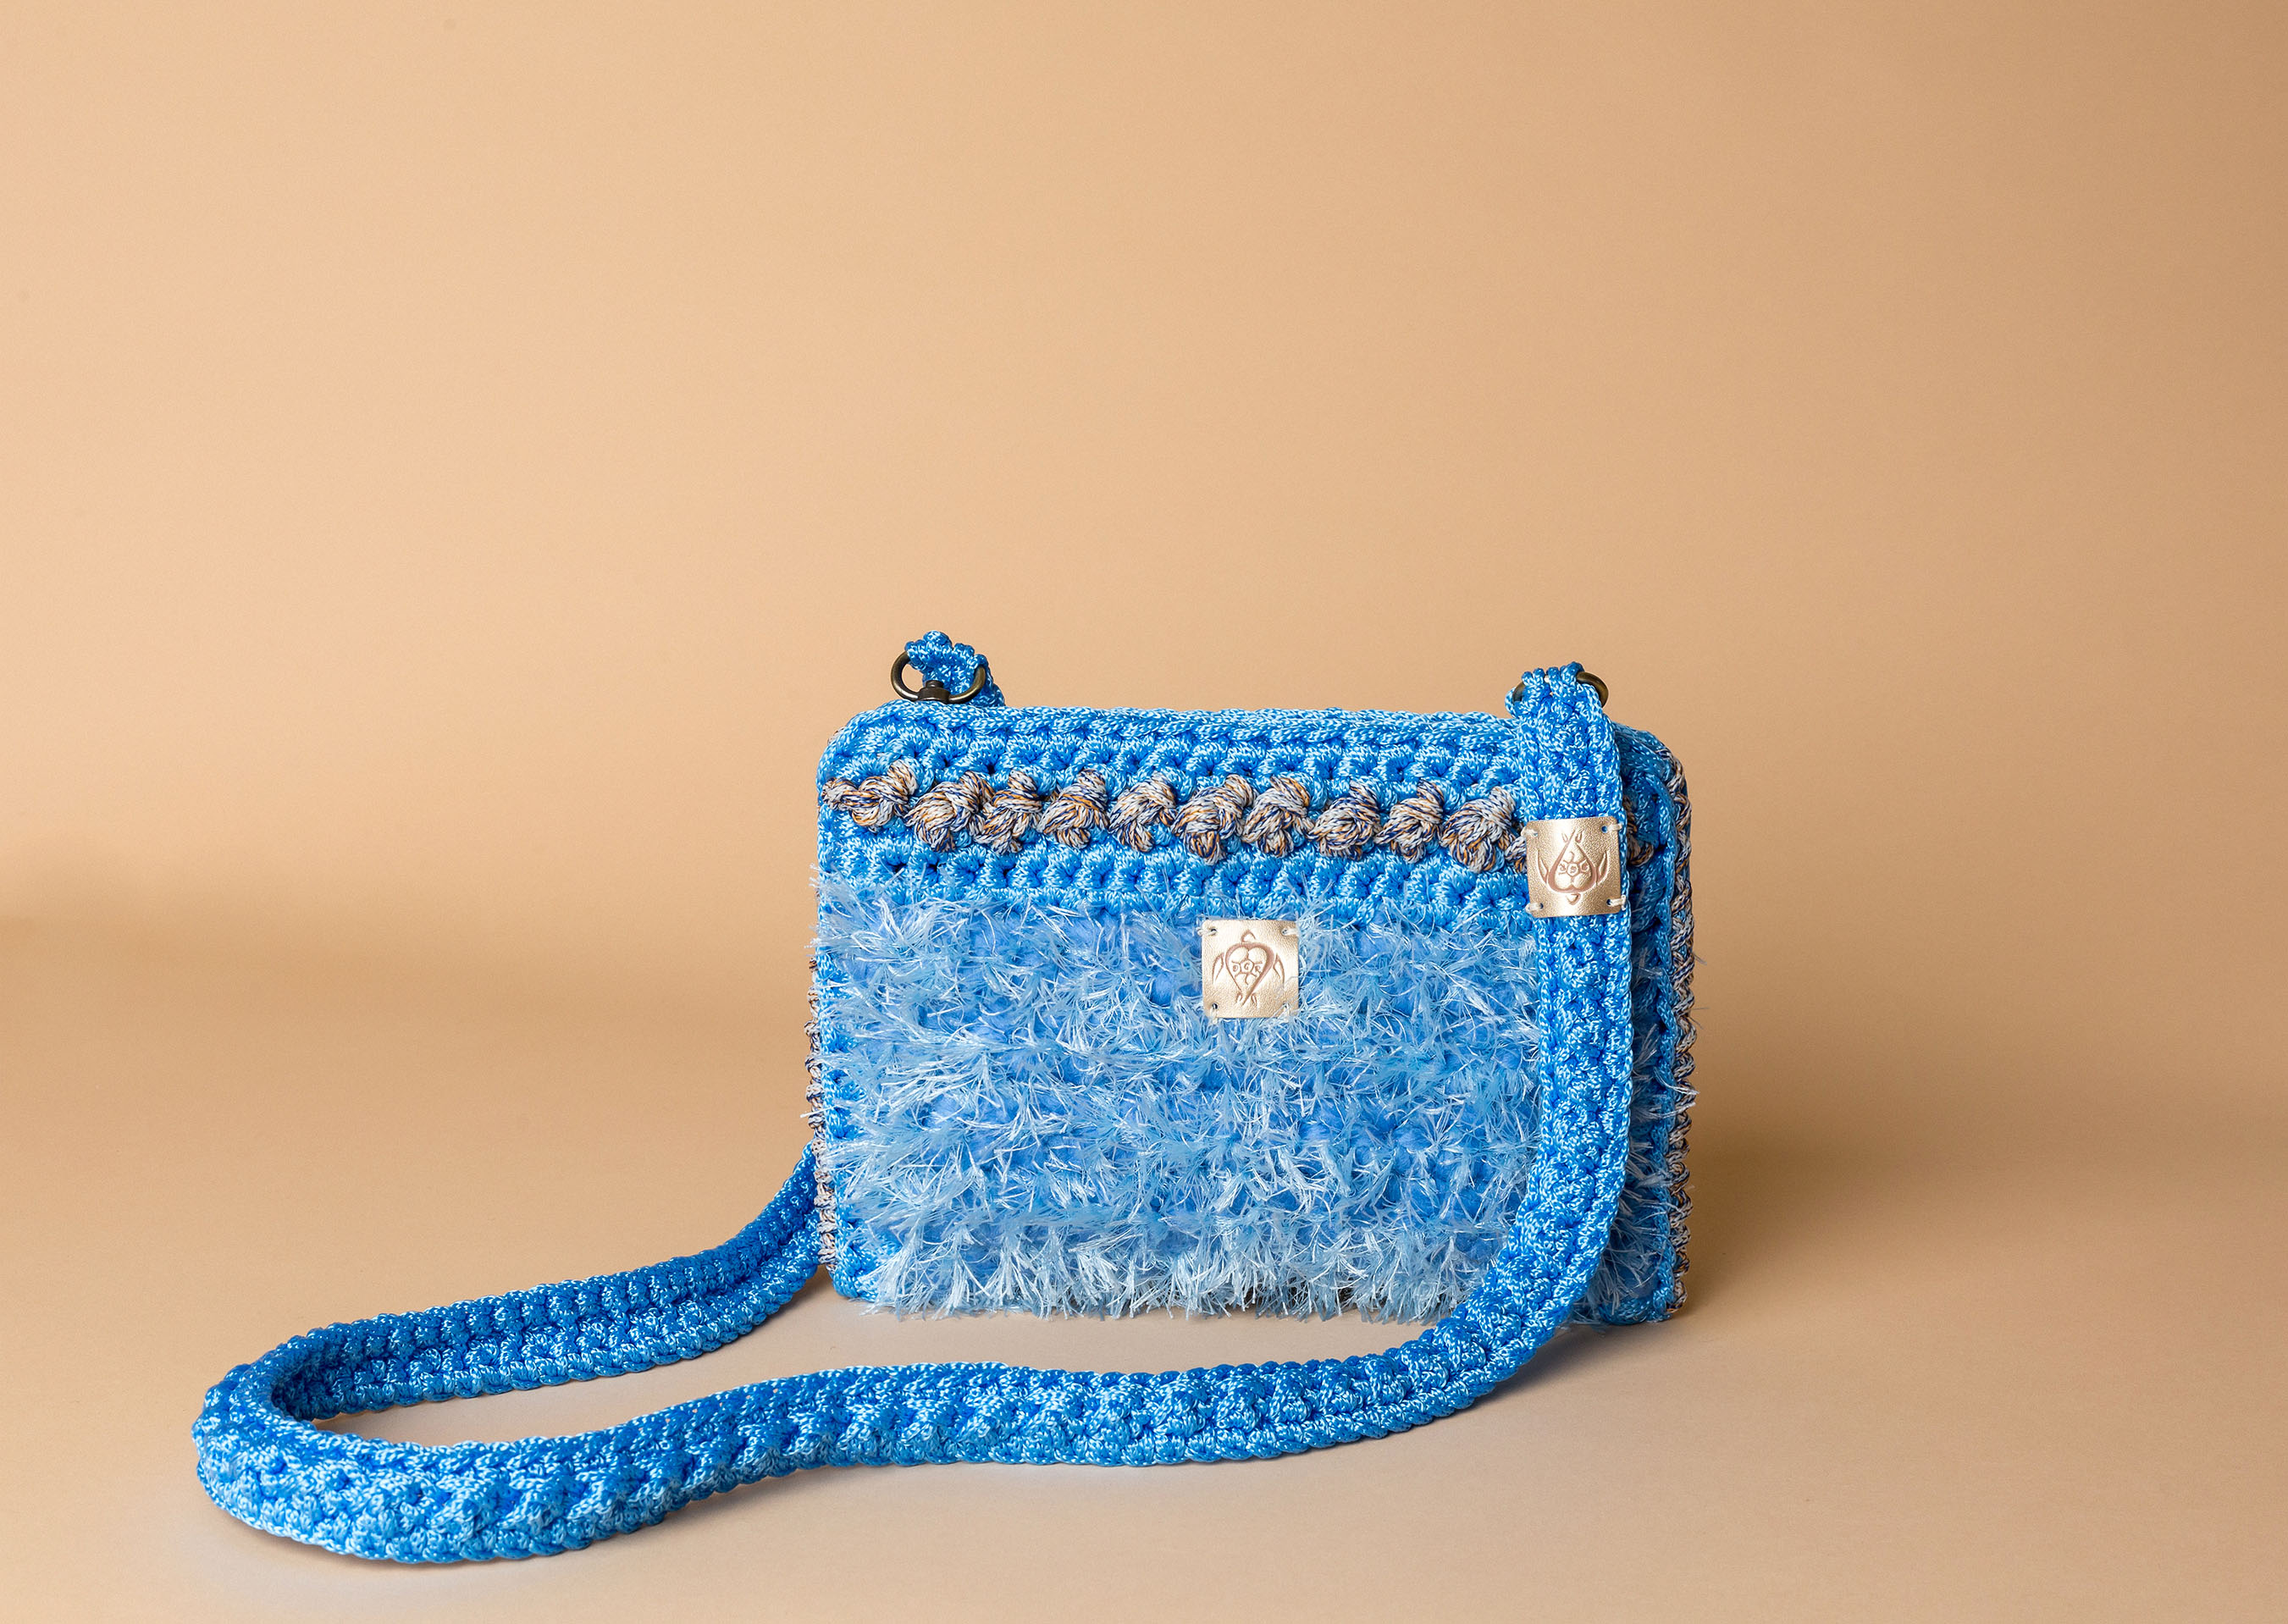 knitted bag petit in sky blue